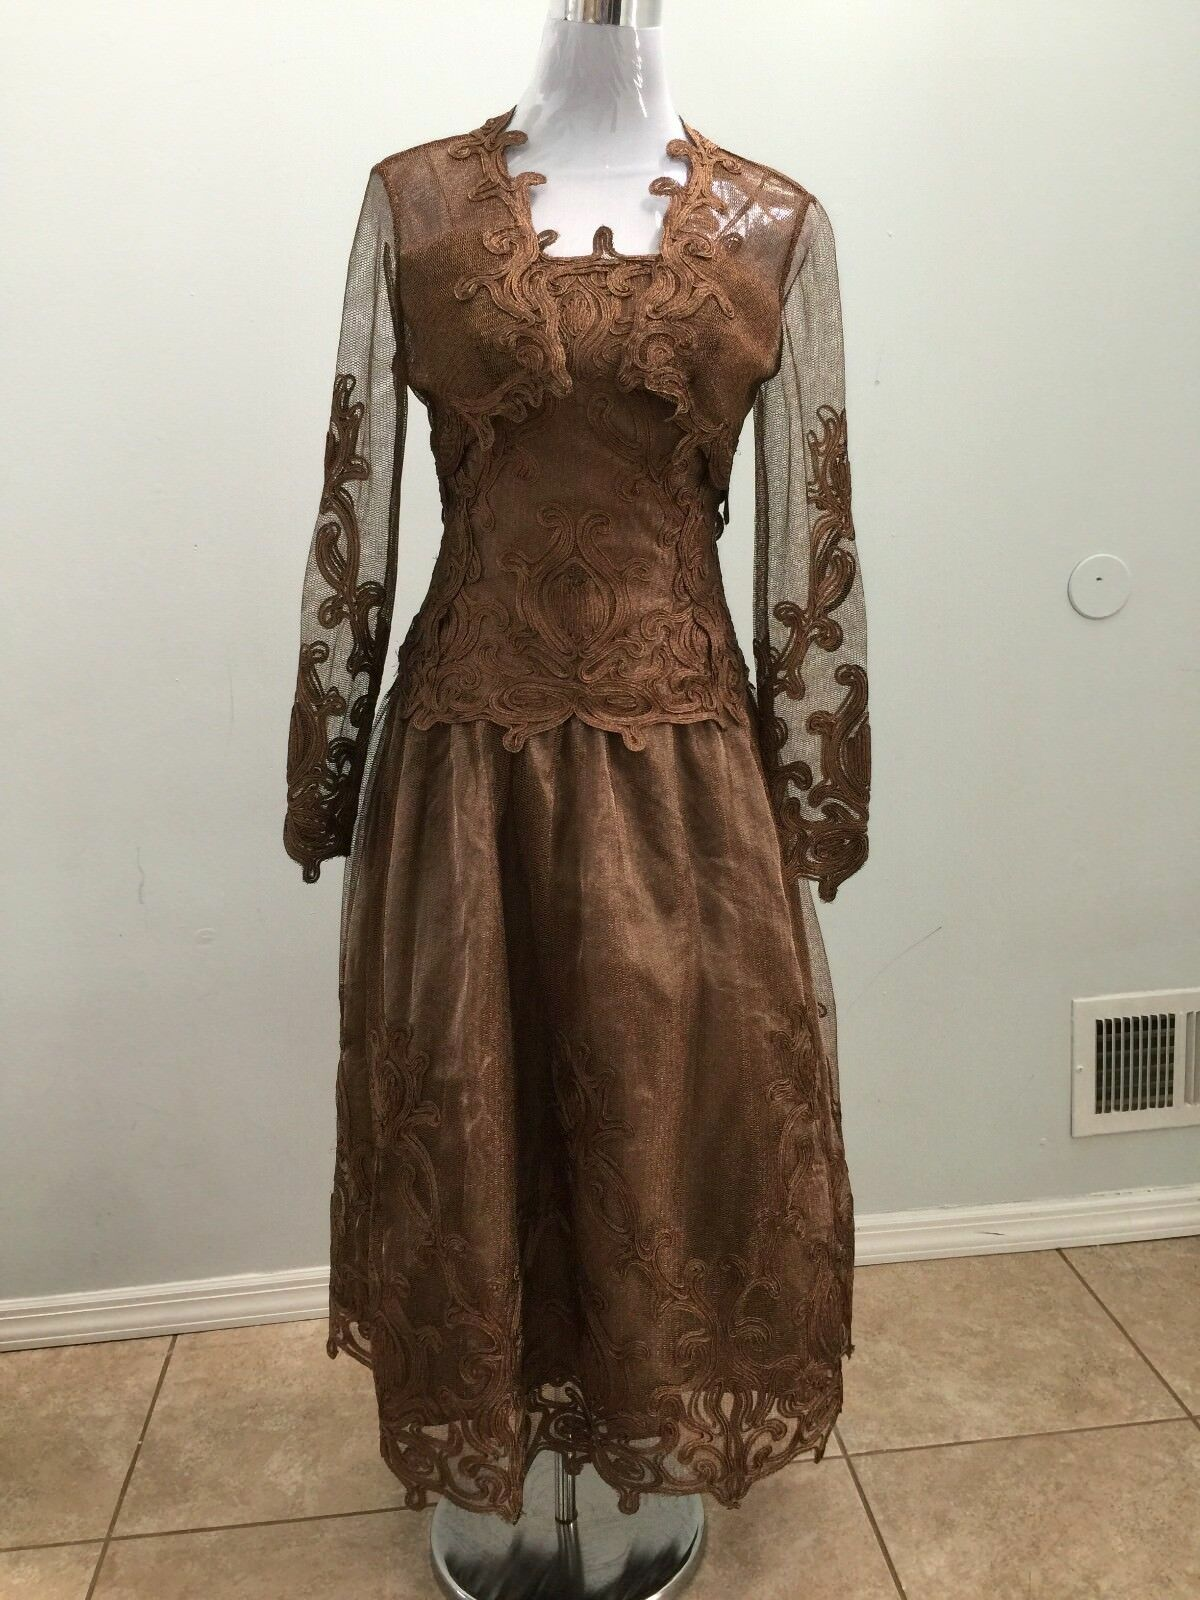 VINTAGE VICTORIAN HAND MADE SHIMMER METALLIC BROWN LACE BOLERO DRESS GOWN XS